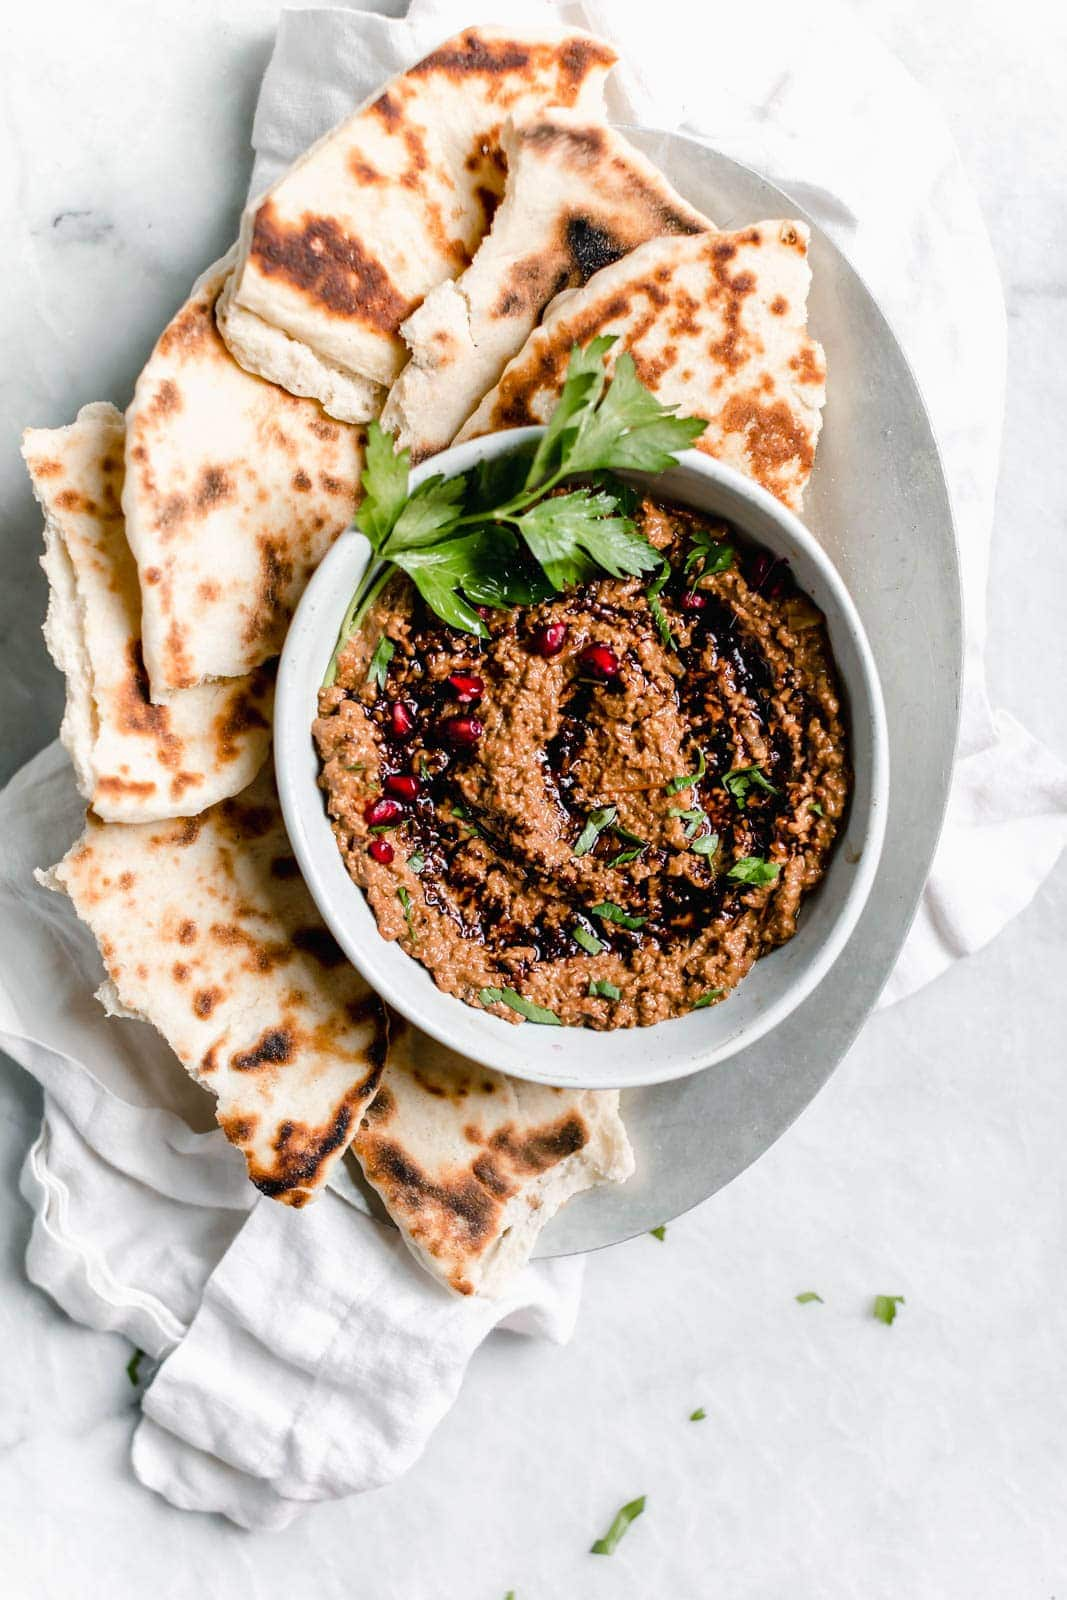 Muhammara aka the best dip you've never heard of. Made with roasted red peppers and walnuts, and sweetened with pomegranate molasses!